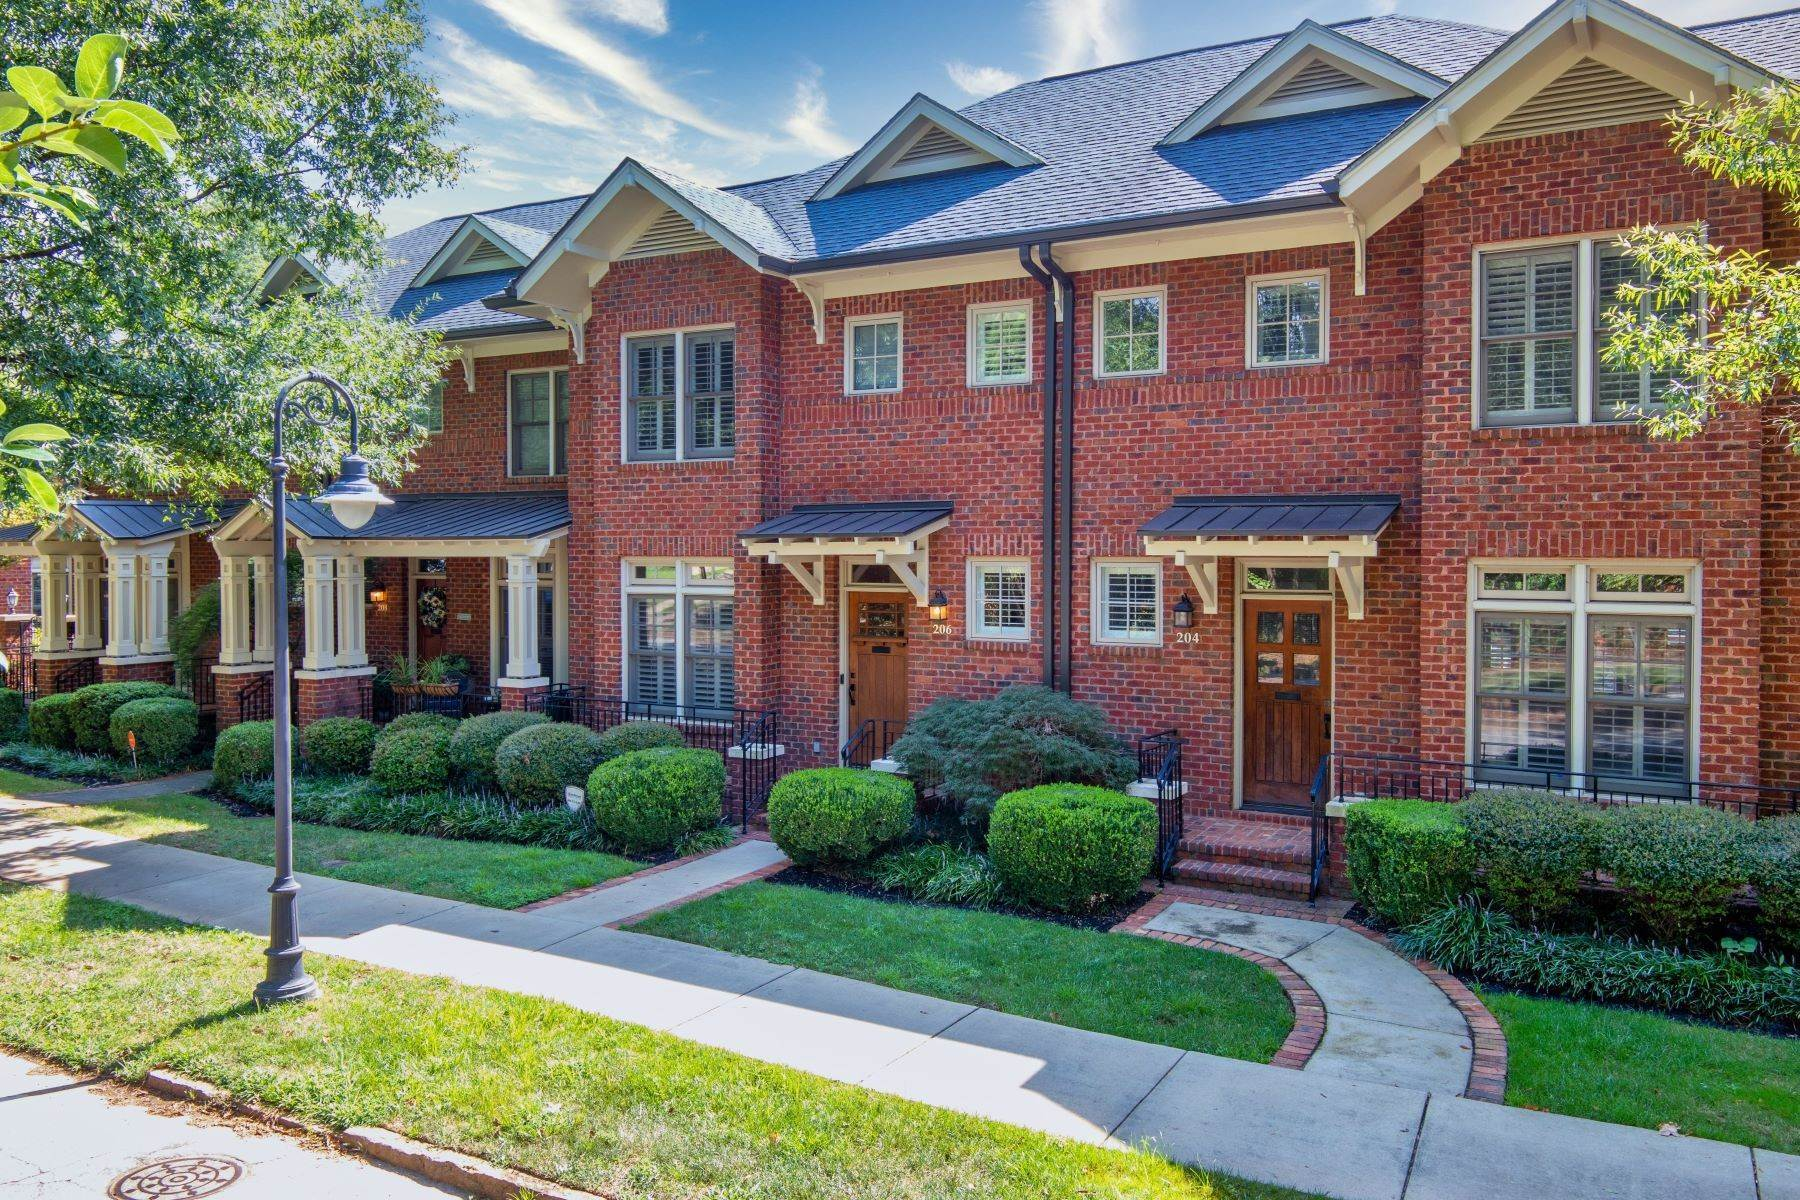 townhouses for Sale at 206 Butler Avenue, Greenville, SC 29601 Greenville, SC 29601